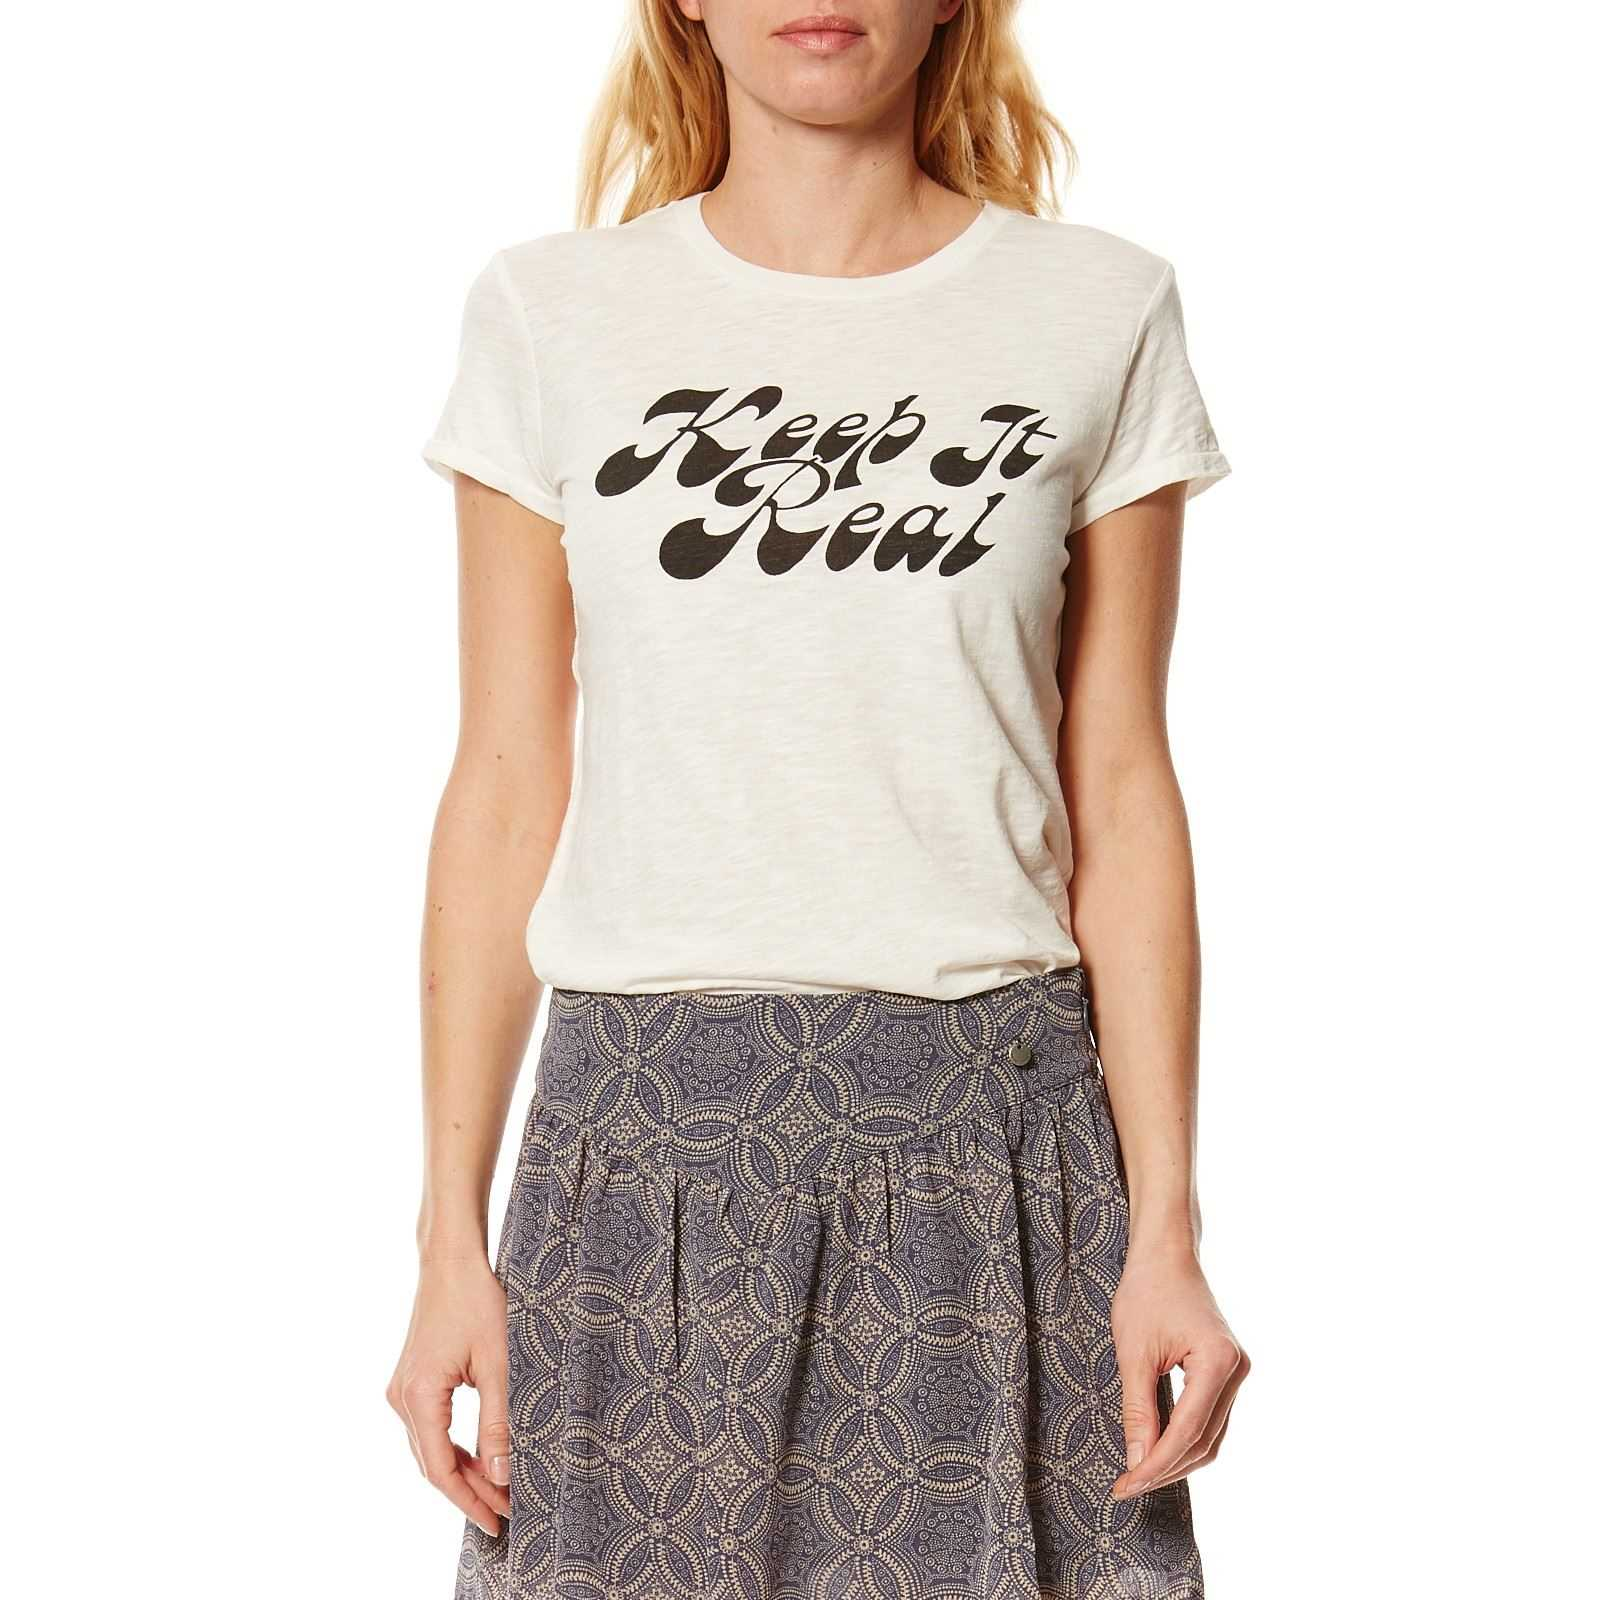 London Catalina  T-shirt  Blanc